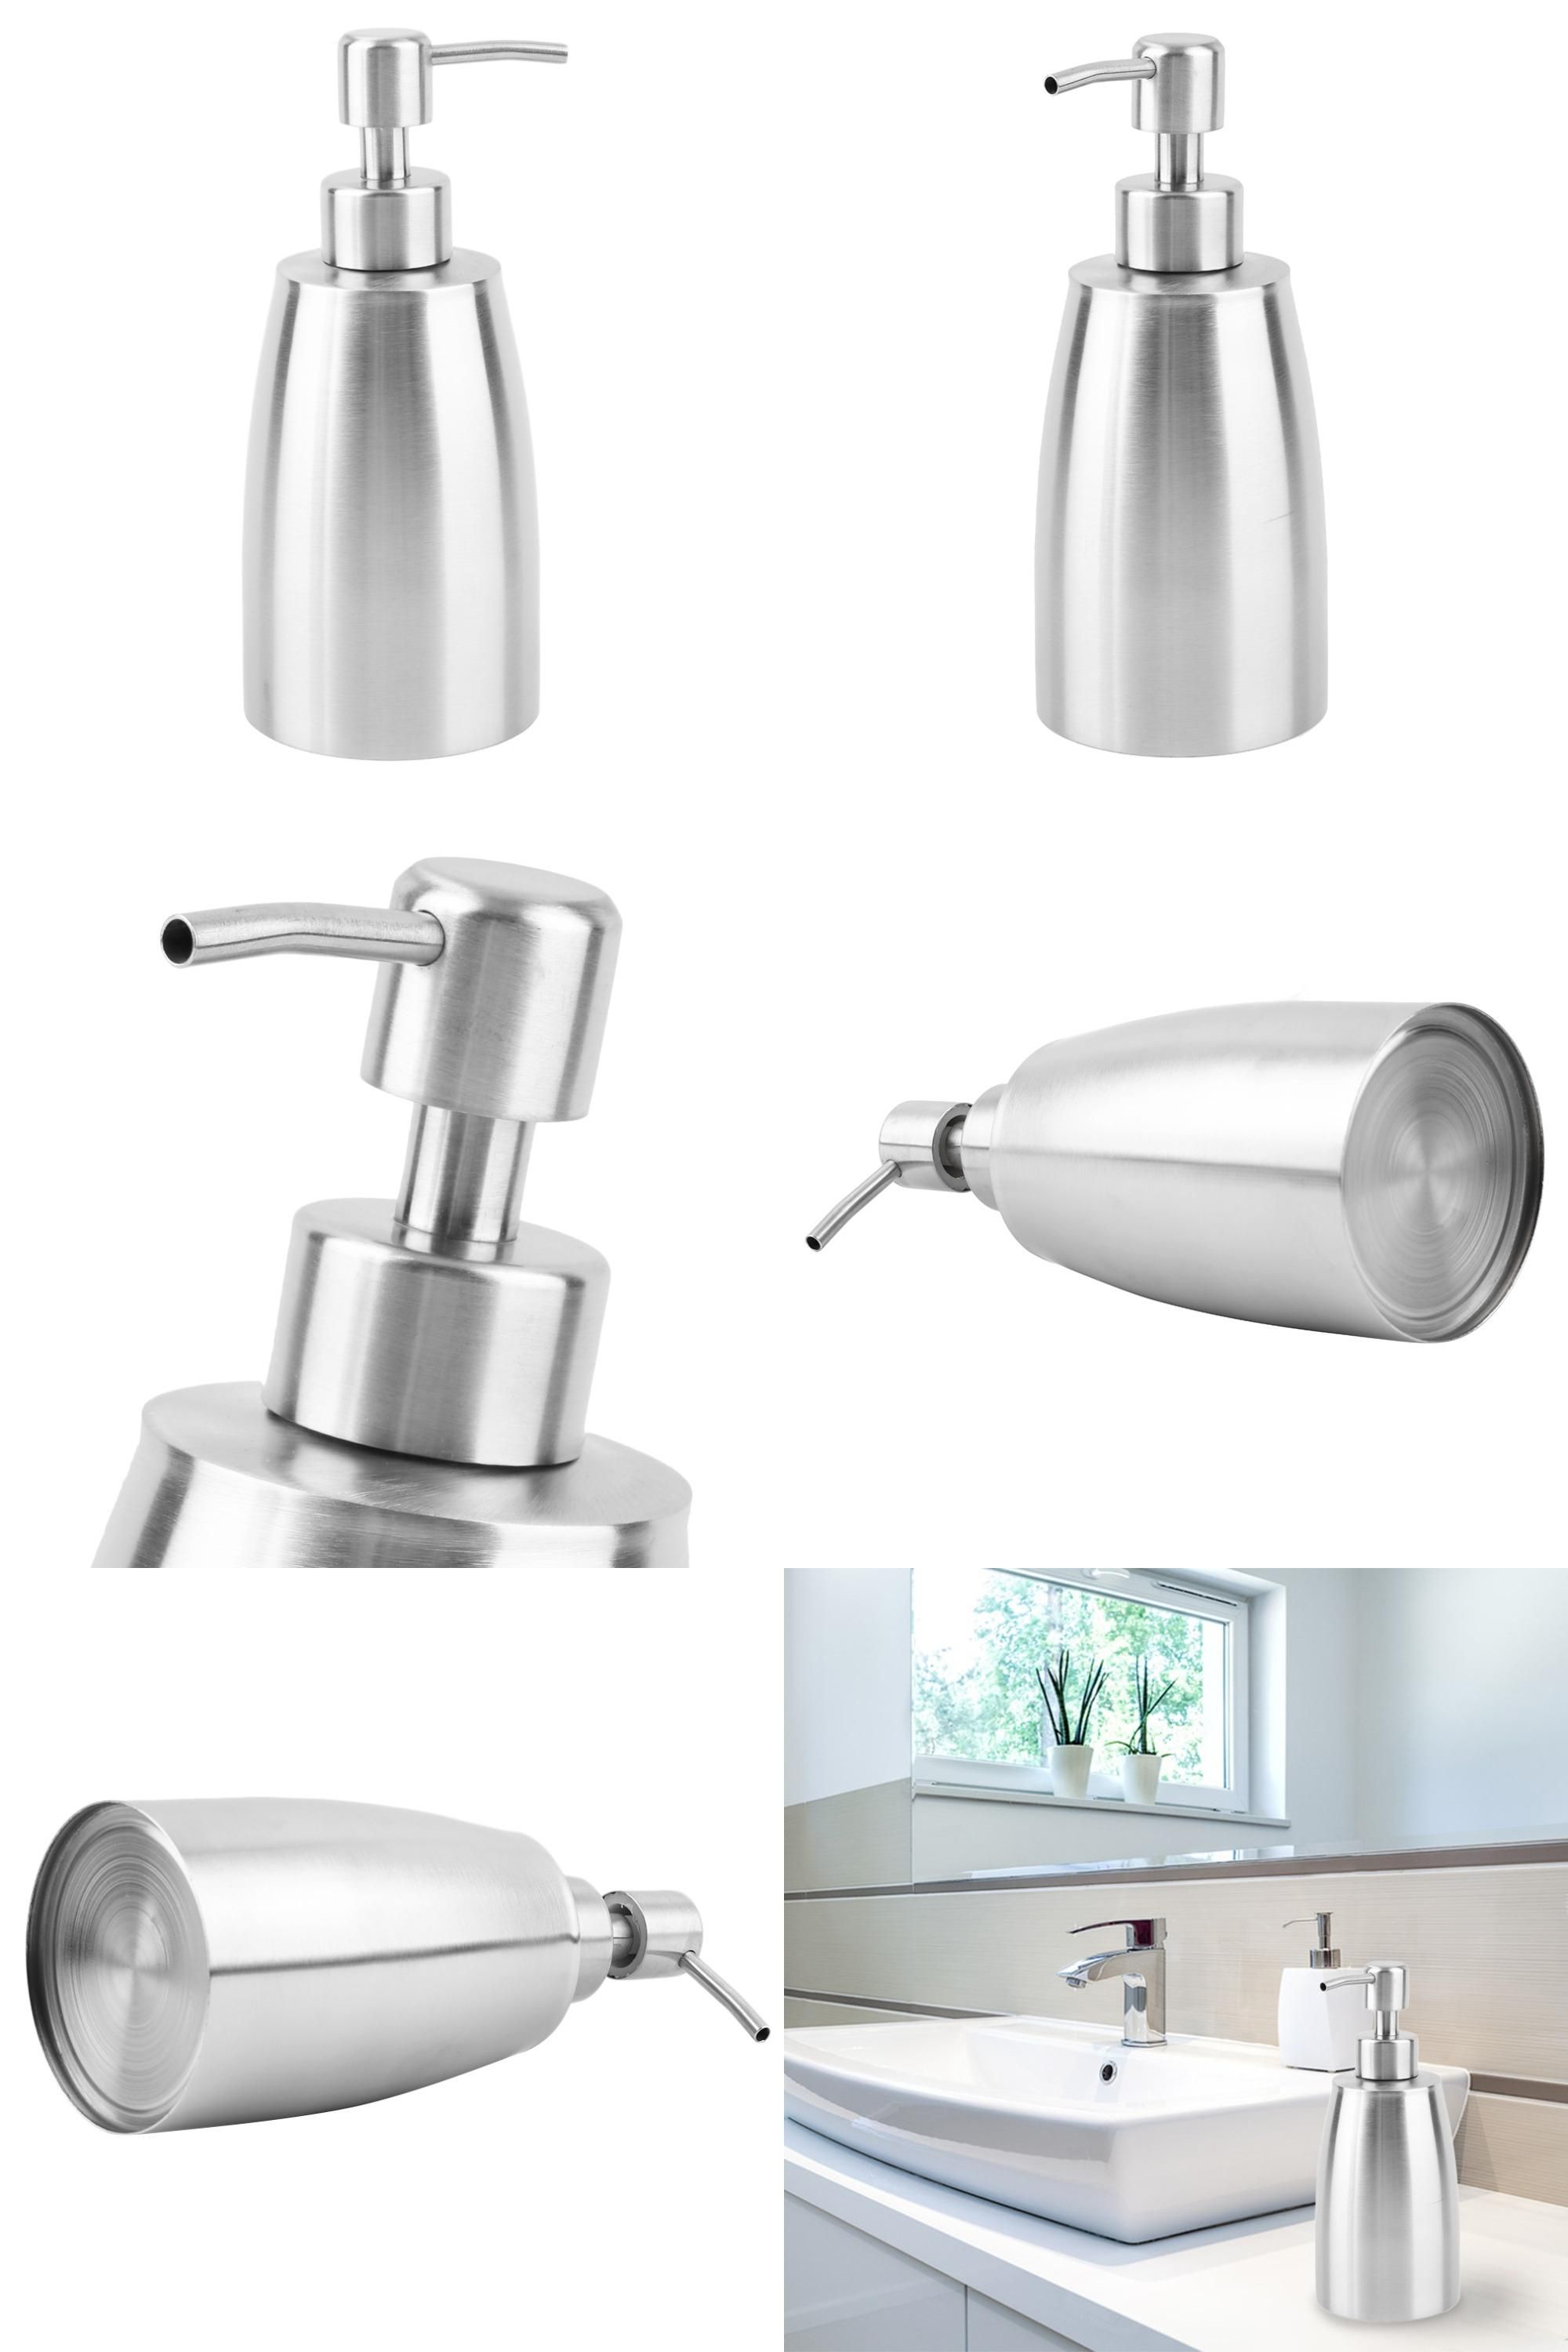 Visit to Buy] New Stainless Steel Liquid Pump Soap Automatic